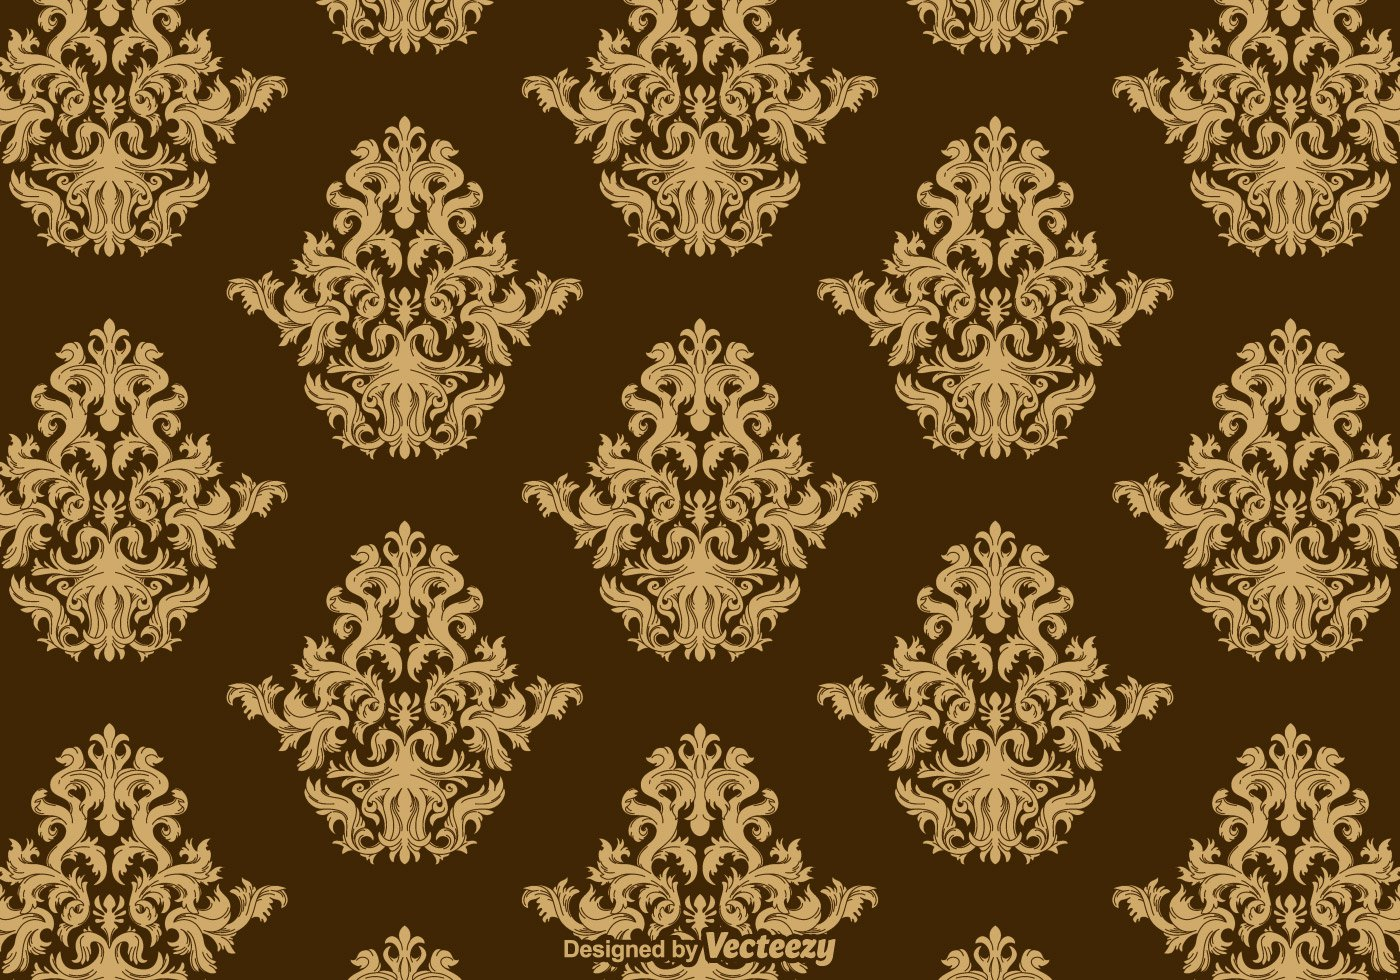 Acanthus Ornament Pattern Psd Free Photoshop Brushes At